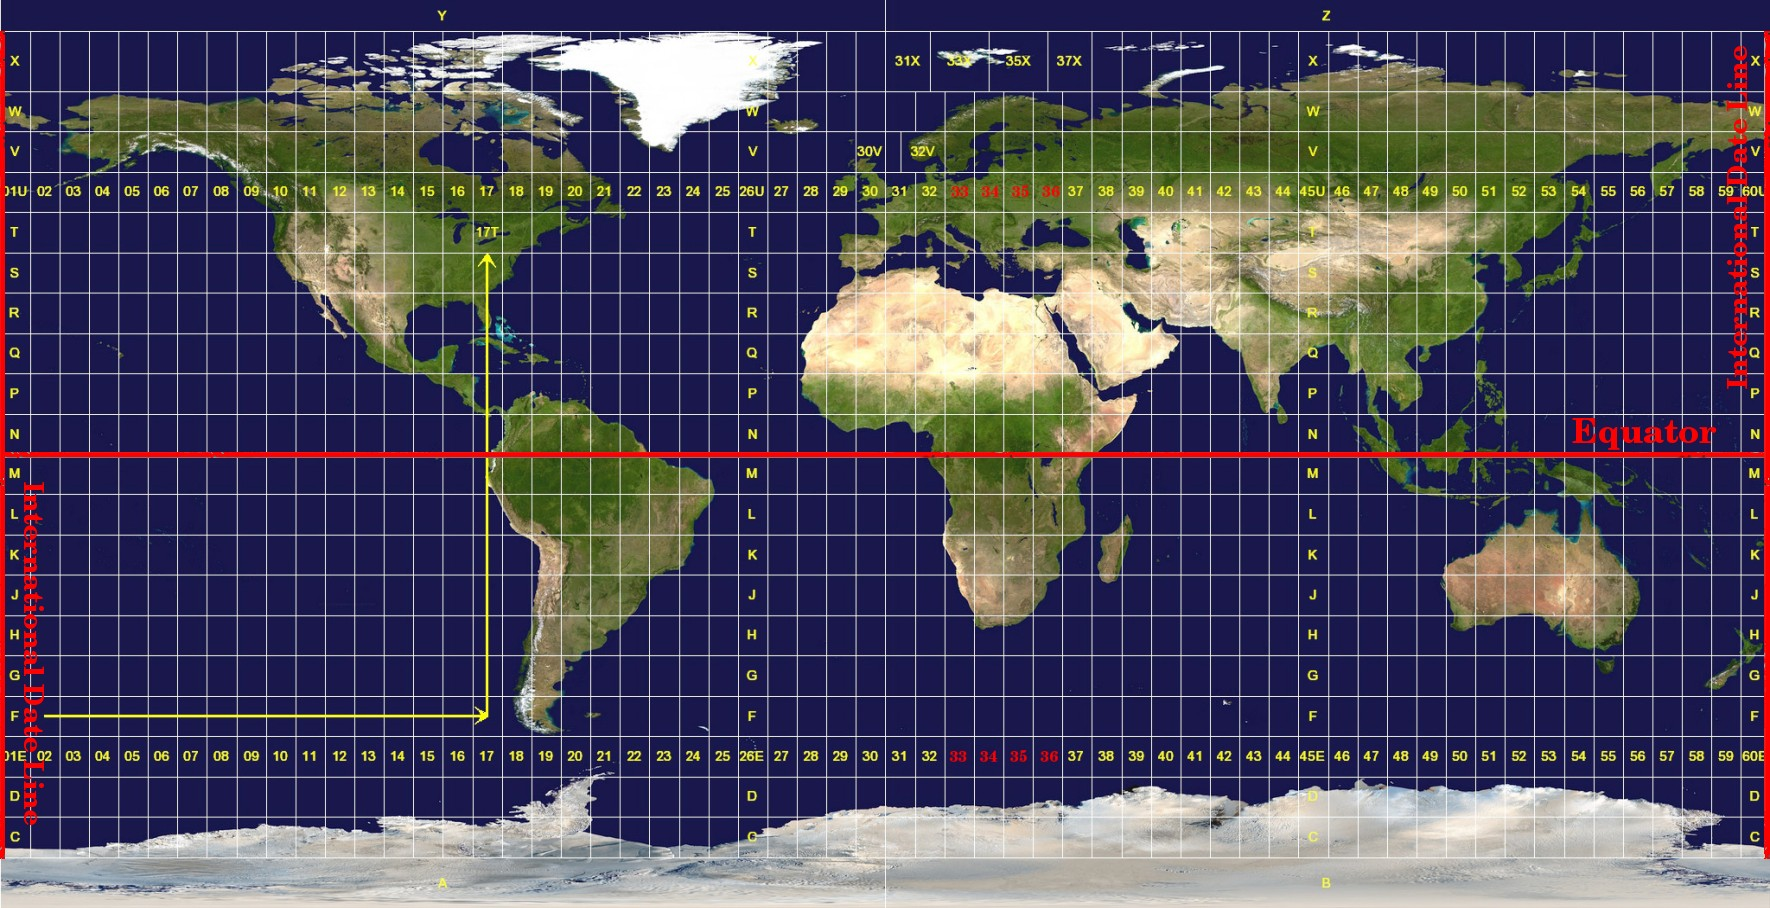 international date line (zone 1 at 180 degrees West longitude) and progressing East back to the international date line (zone 60 at 180 degrees East longitude) as shown in Illustration 9 below.